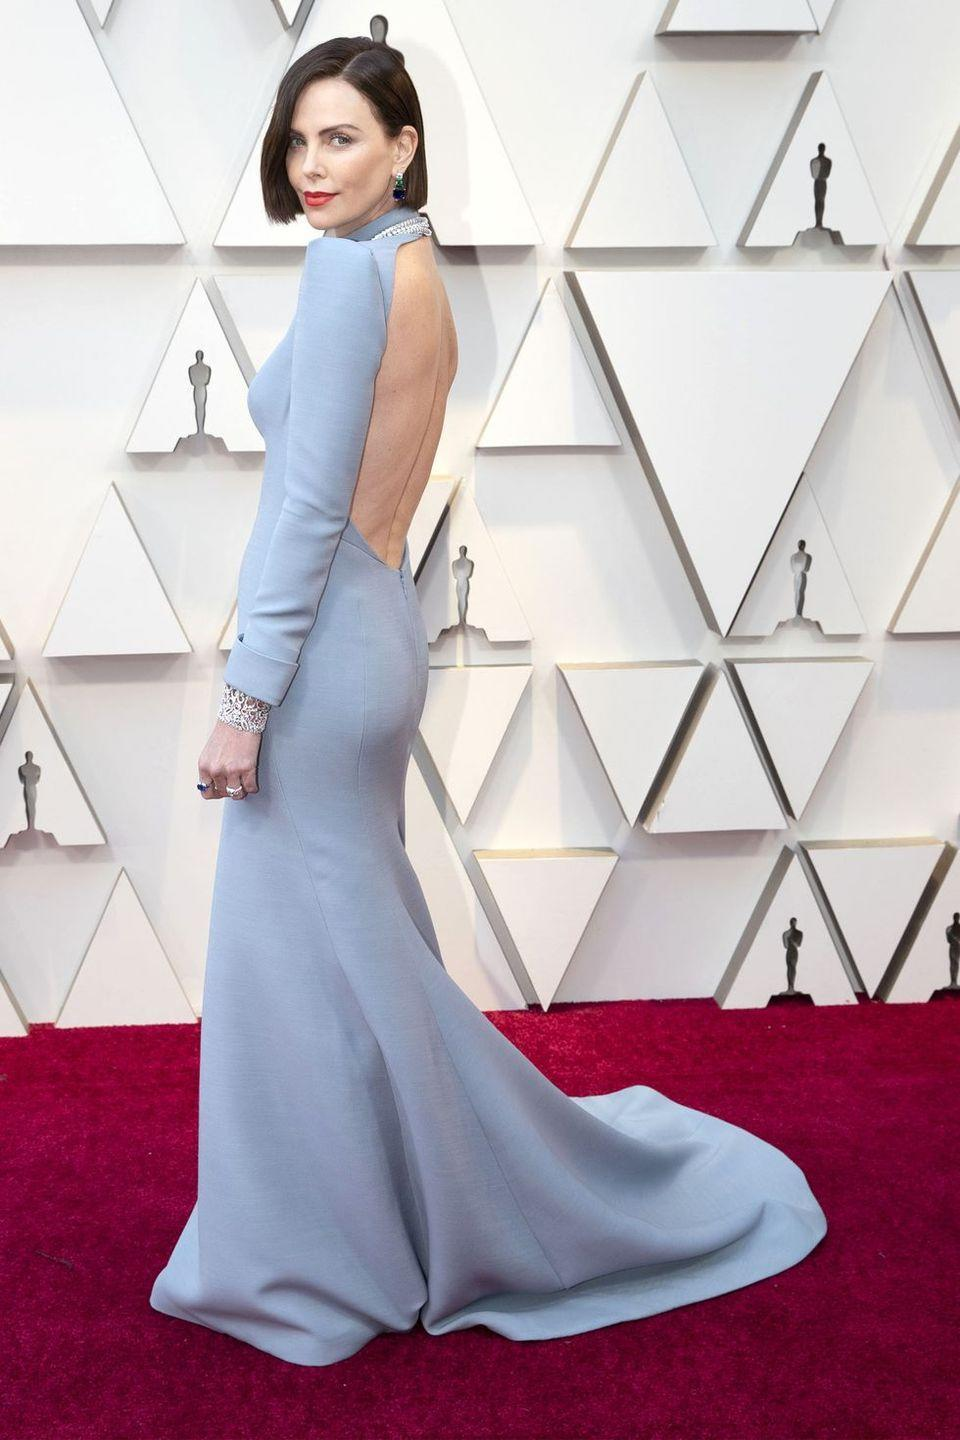 """<p>Charlize Theron stepped out in a <a href=""""https://www.harpersbazaar.com/beauty/hair/a26501330/charlize-theron-oscars-2019/"""" rel=""""nofollow noopener"""" target=""""_blank"""" data-ylk=""""slk:freshly chopped dark bob"""" class=""""link rapid-noclick-resp"""">freshly chopped dark bob</a> and a backless, dusty blue long-sleeved Dior gown. She accessorized the look with BVLGARI's Serpenti collection, including a white gold double necklace with a matching bracelet, and a diamond necklace of over 75 carats. Bling, bling.</p>"""